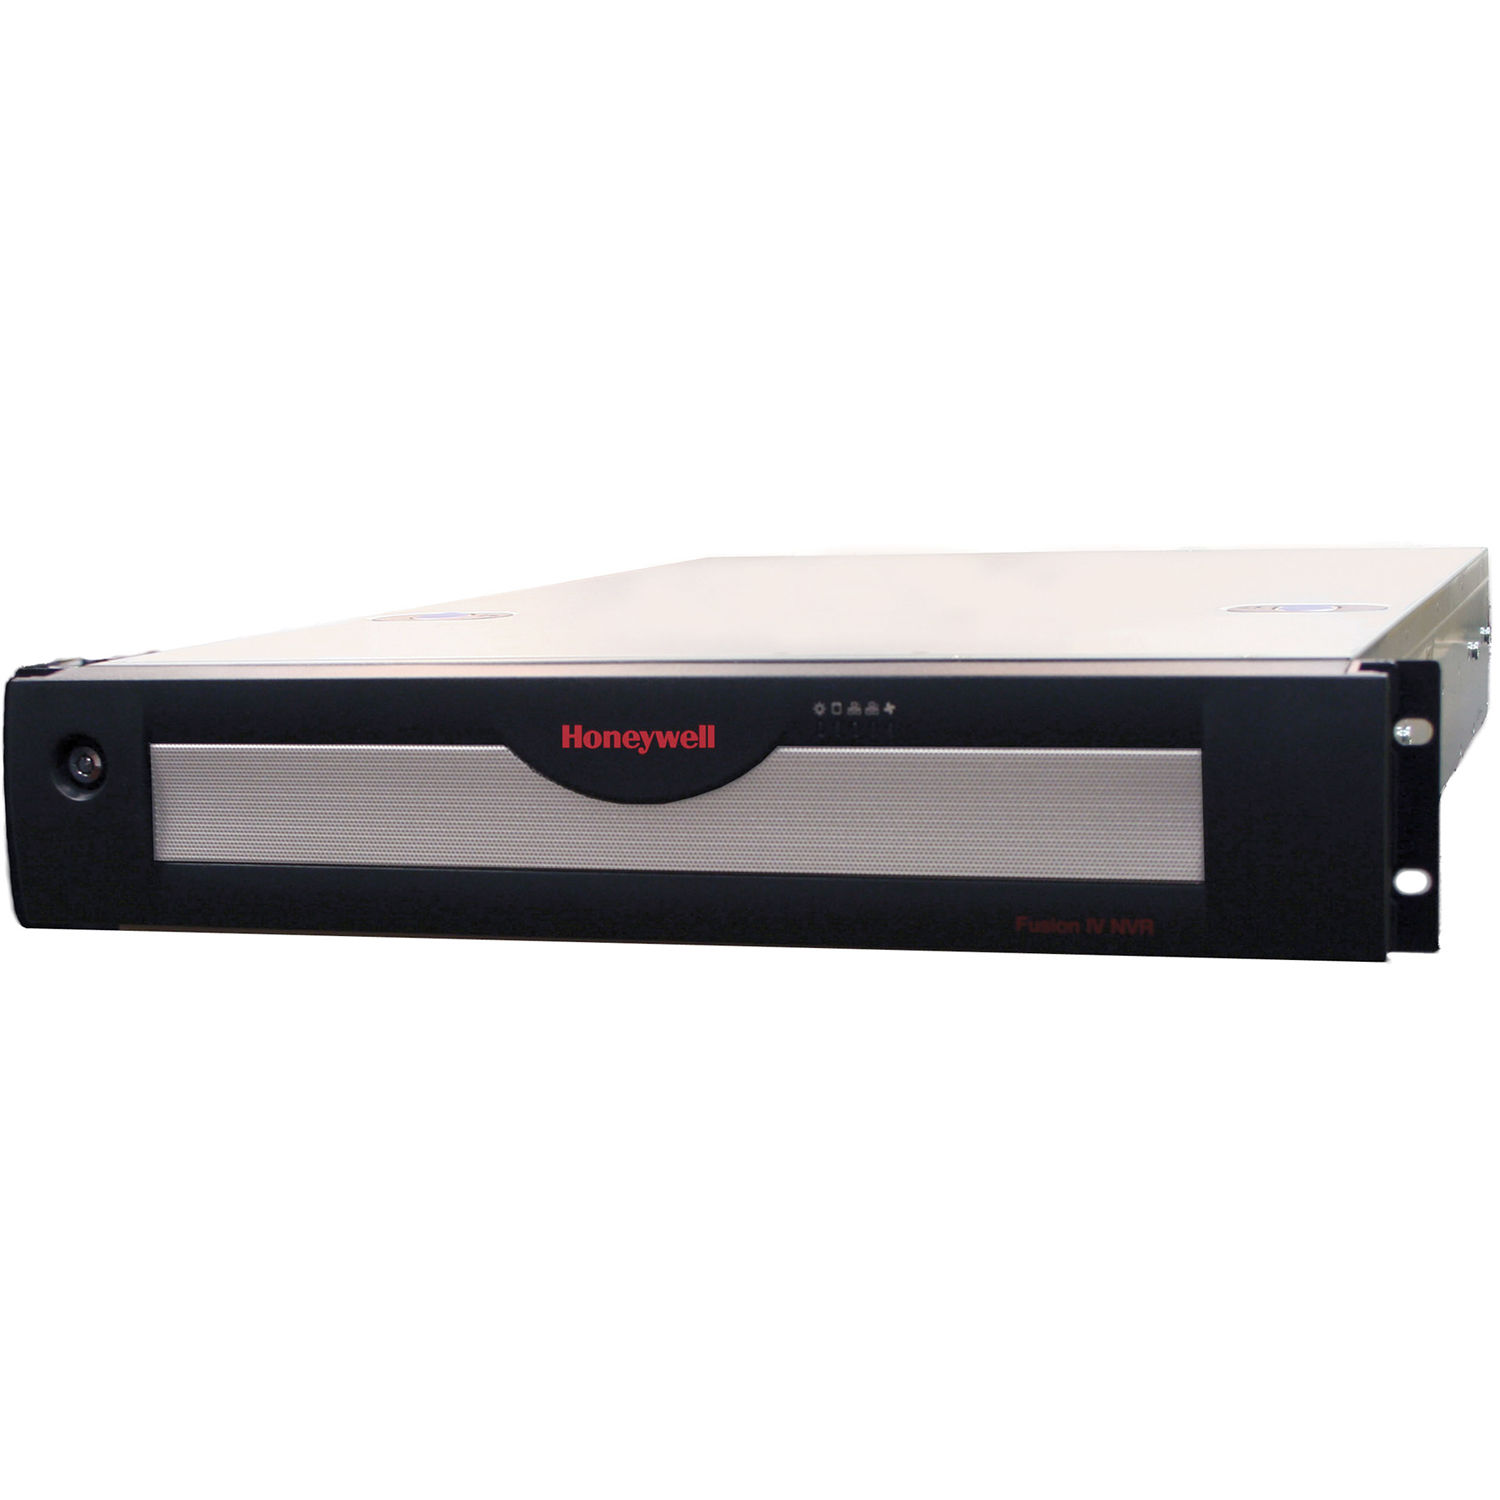 Honeywell Maxpro Standard Edition 32 Channel Nvr Hnmse32bp16t